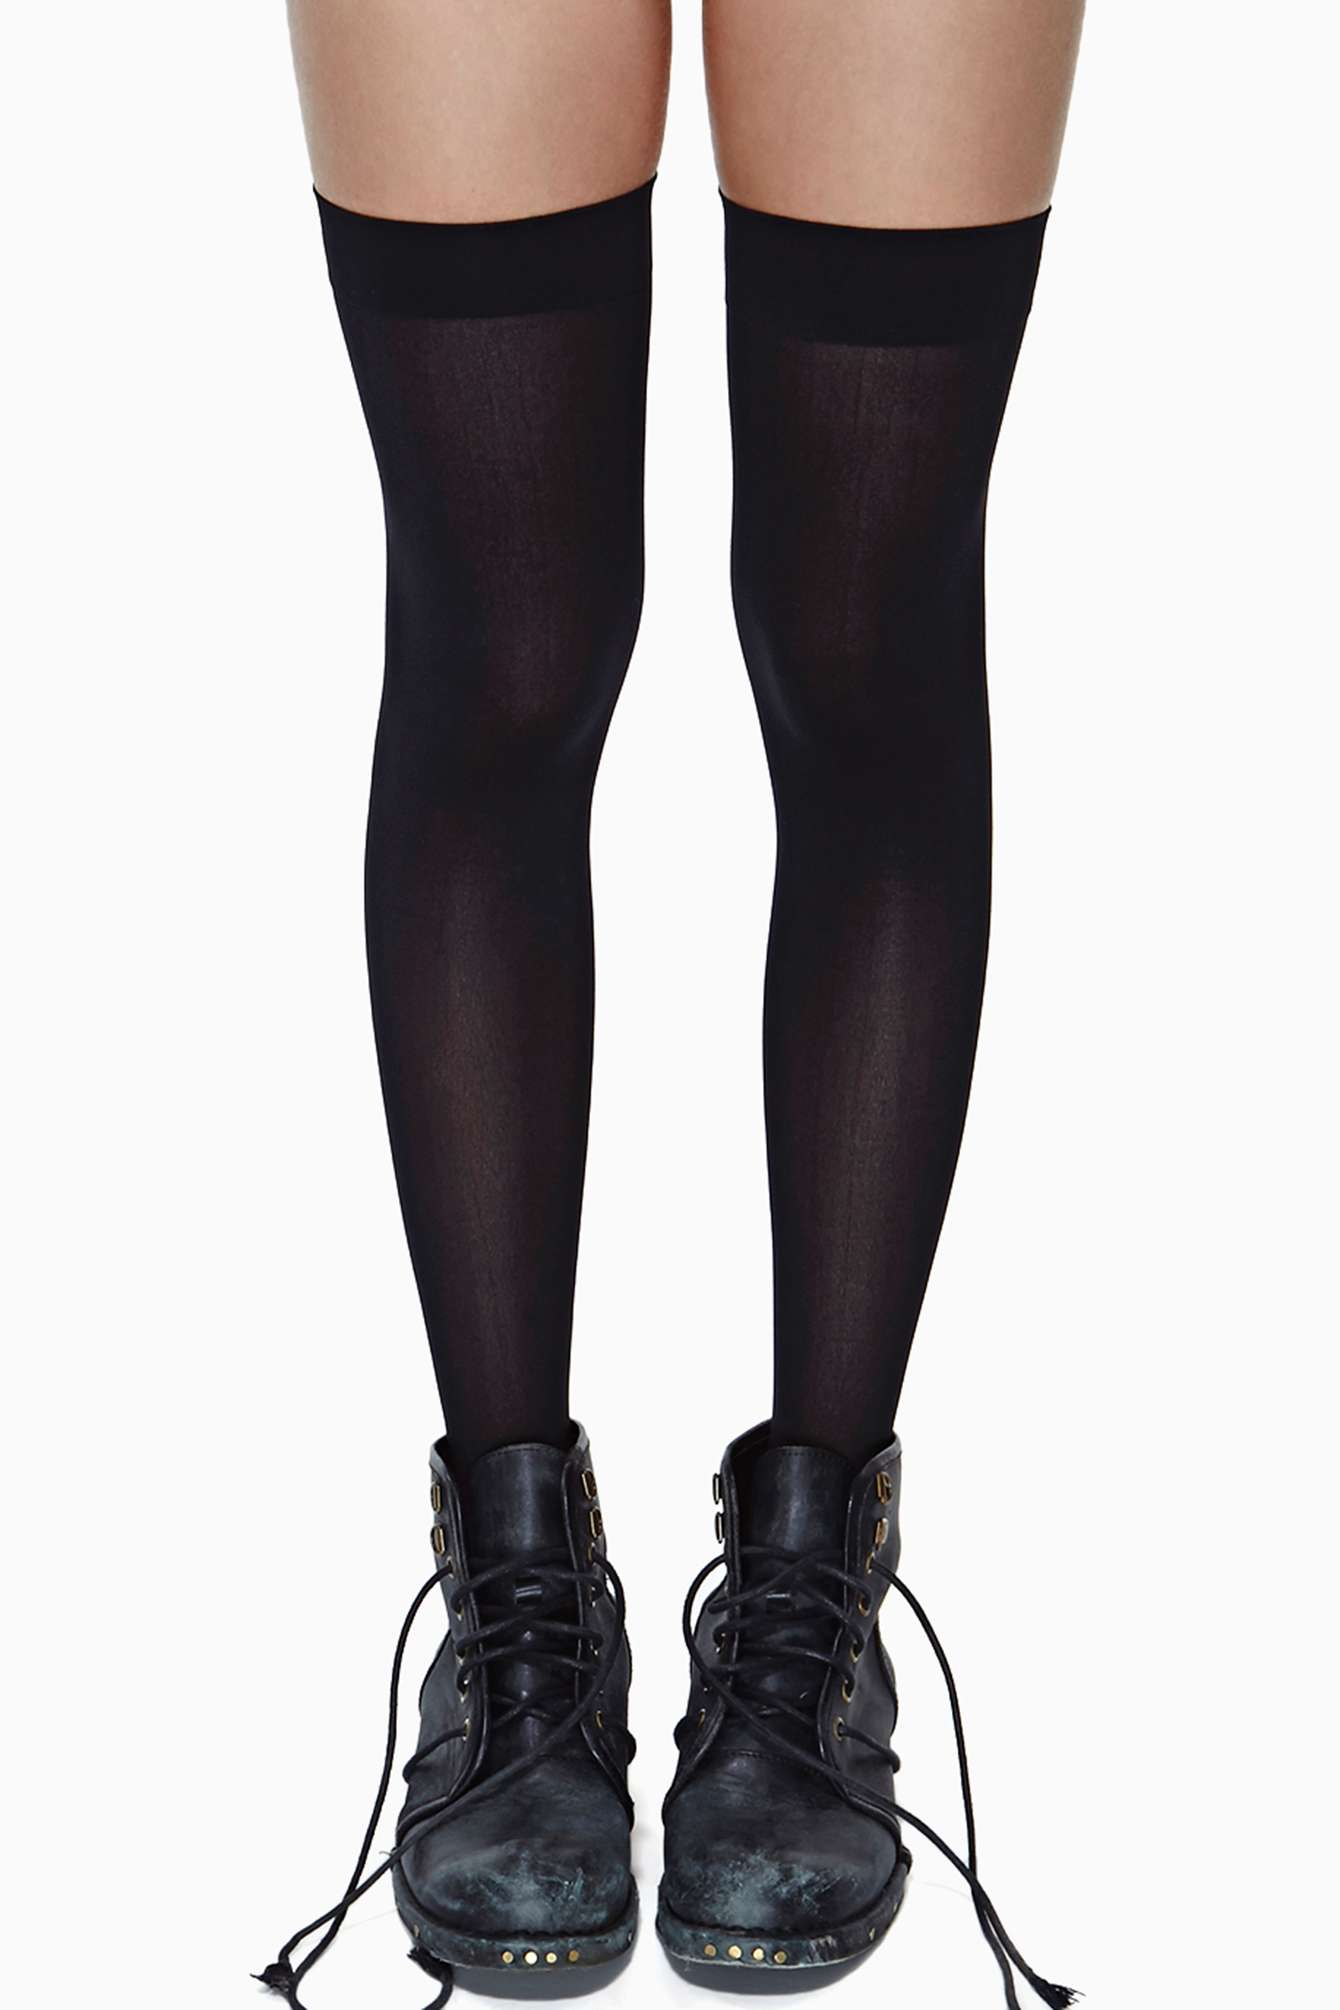 Lyst - Nasty Gal School Girl Thigh High Socks In Black-1941